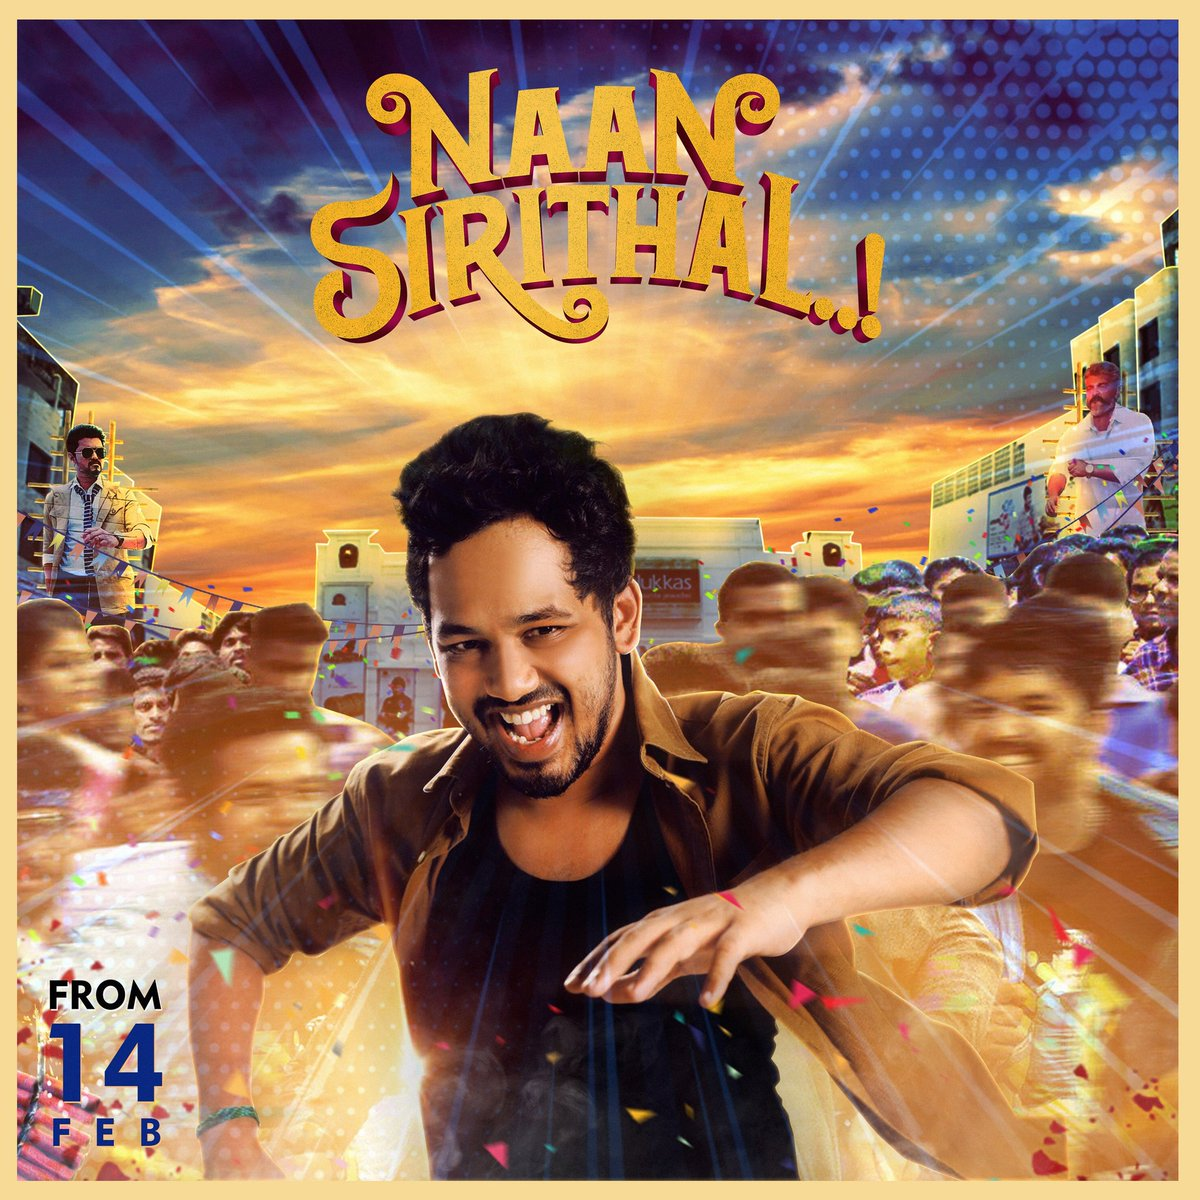 Happy to release the common DP of #NaanSirithal on behalf of all @hiphoptamizha Anna's fans :)  Get ready to laugh out loud with Gandhiiiiiii💥❤️ #NaanSirithalFromFeb14 Design by @yasirnizardeen2